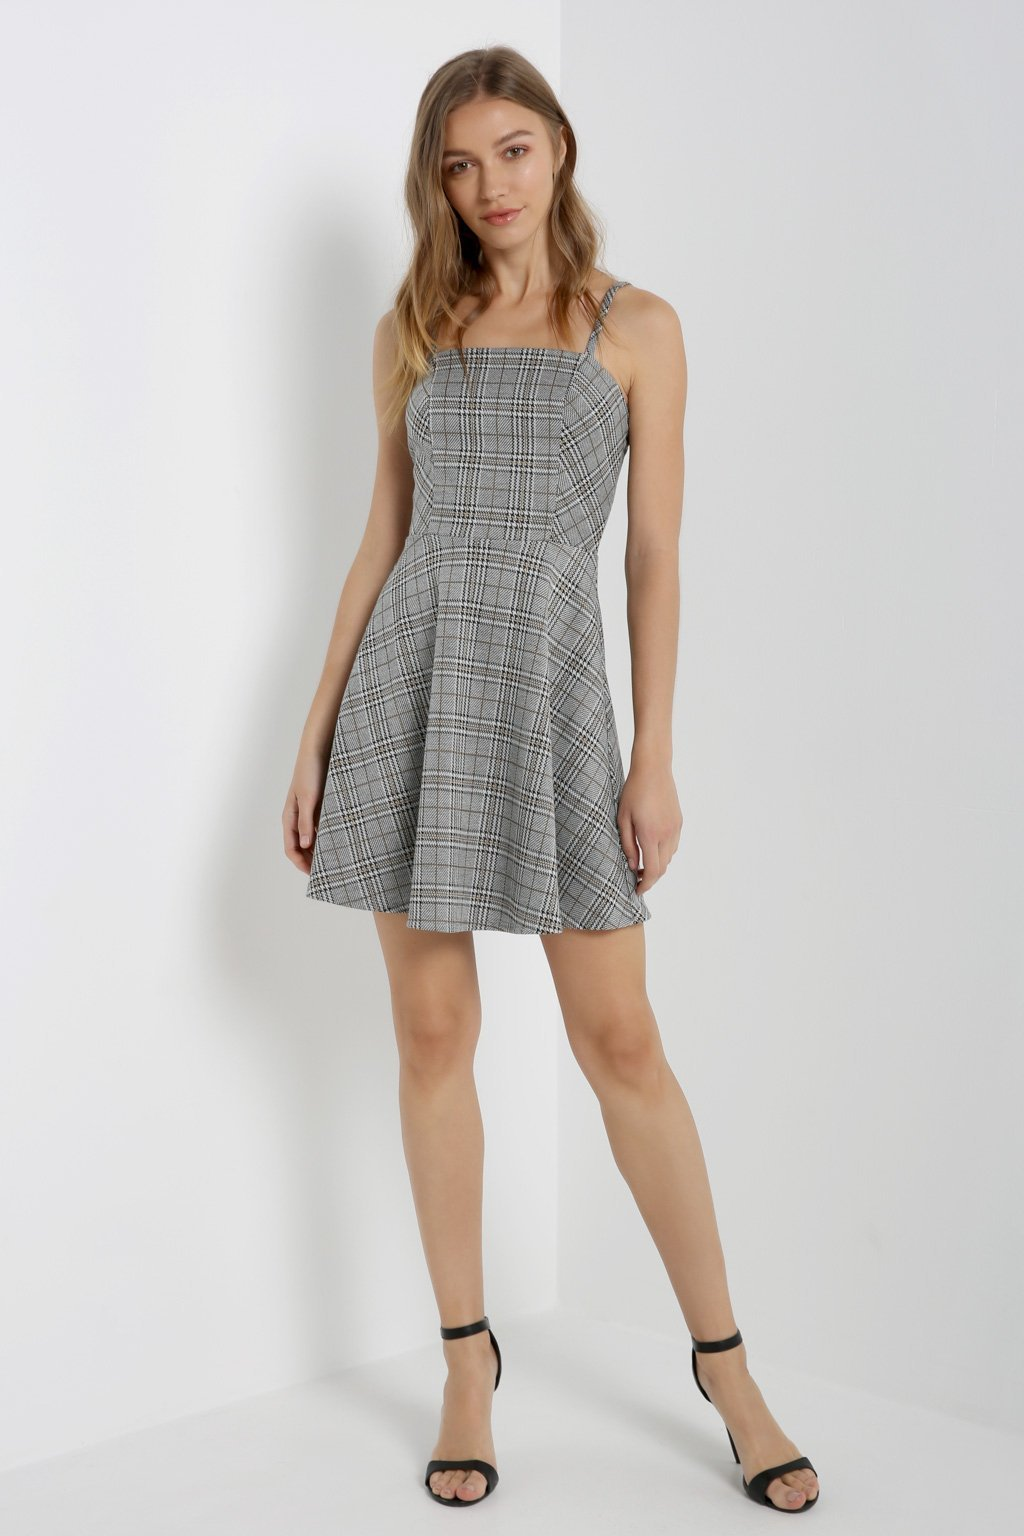 Poshsquare Dress Glen Plaid Fit and Flare Dress